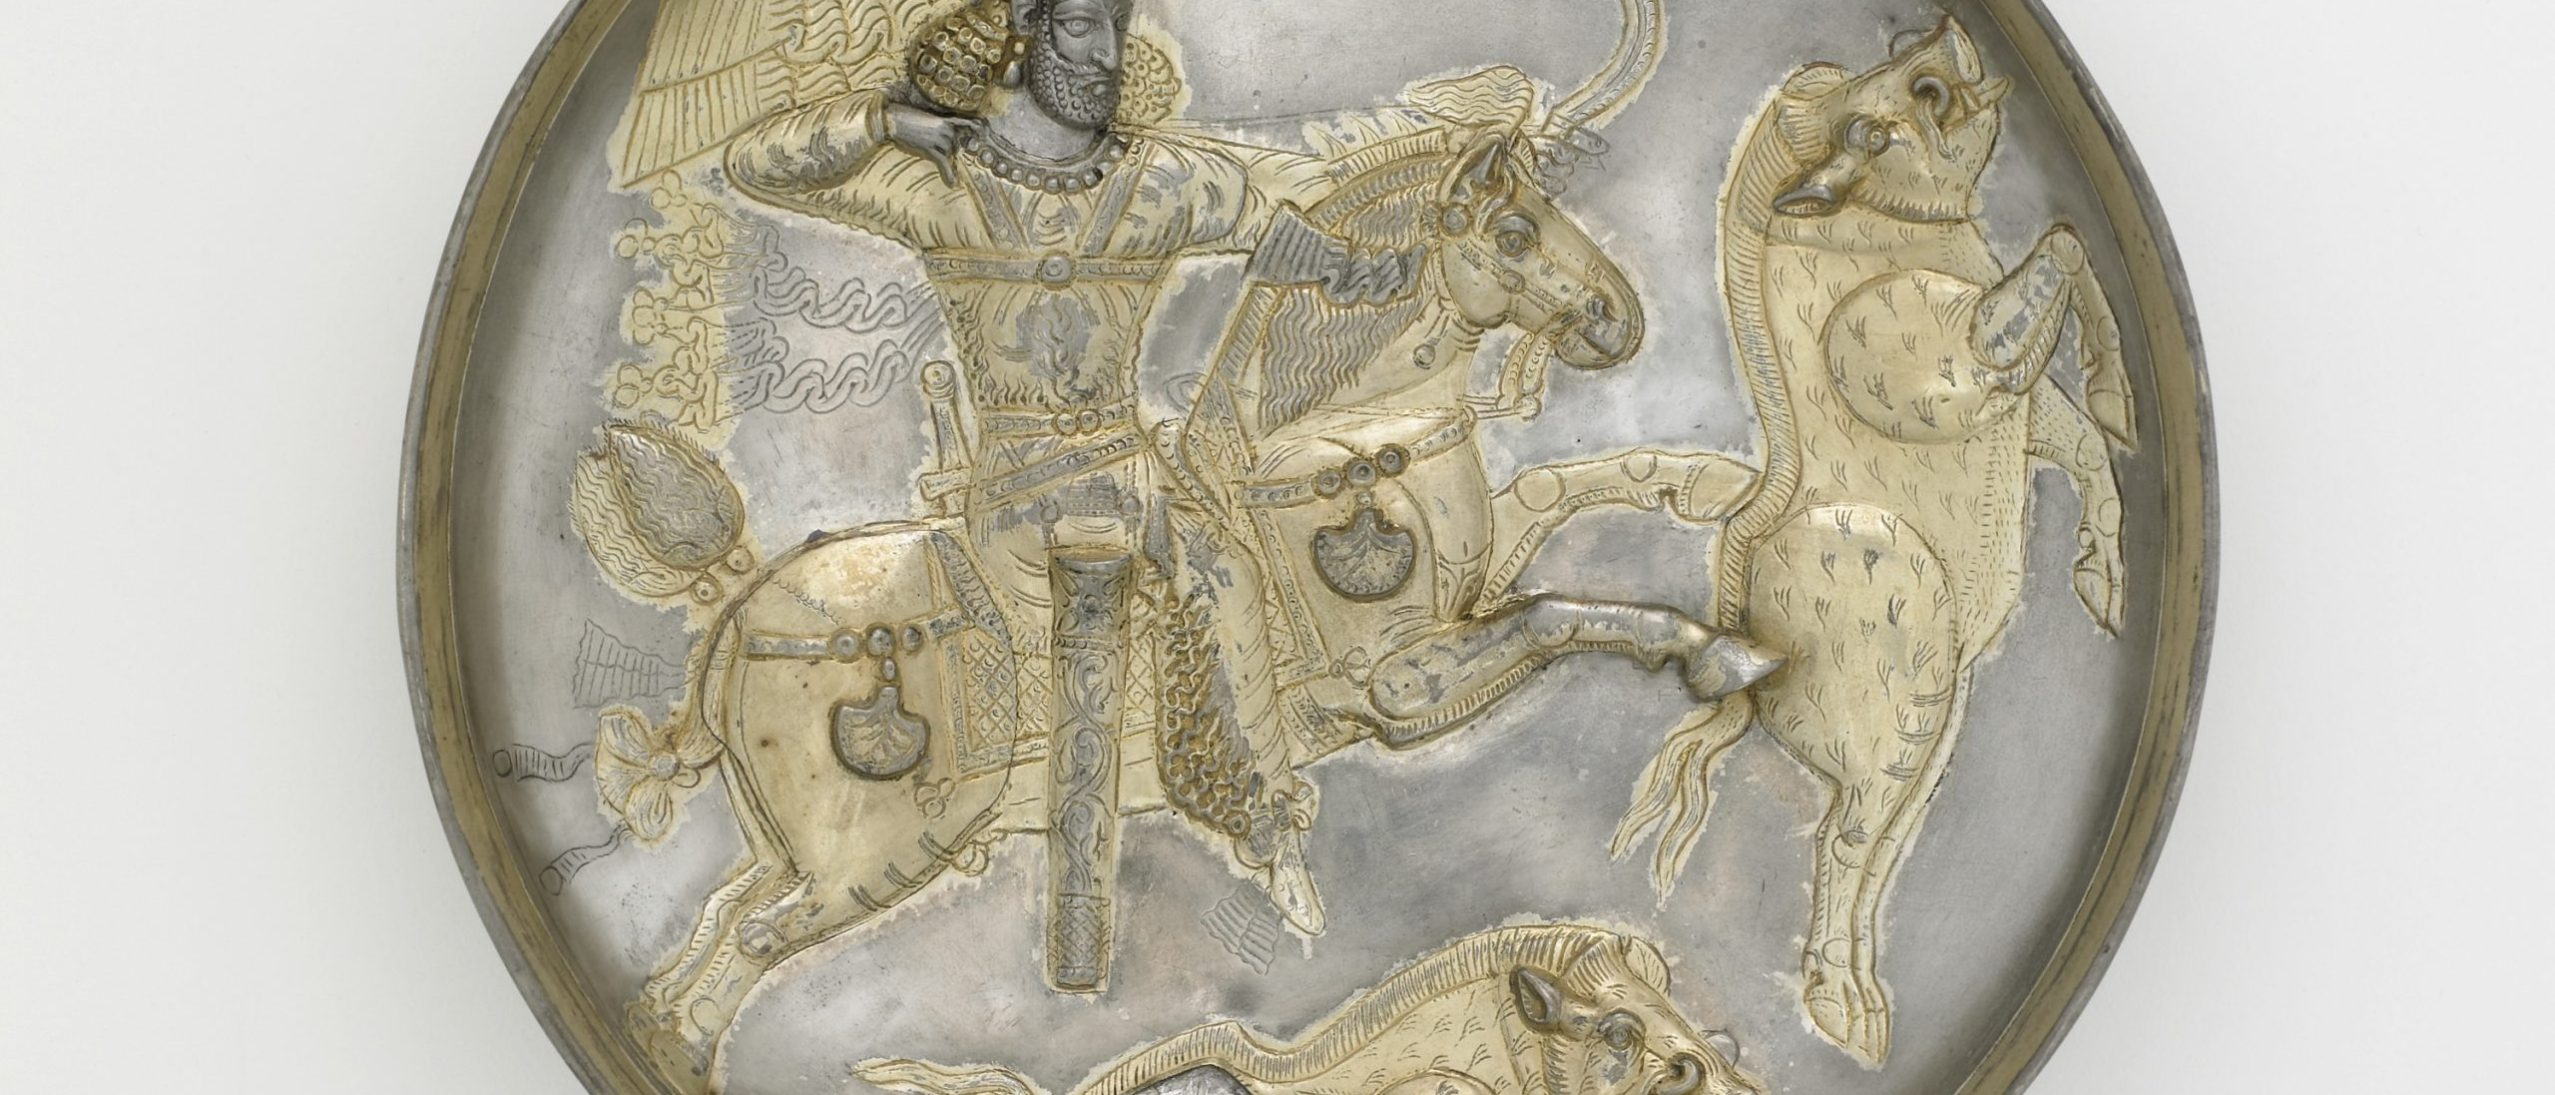 Metalwork plate with silver and gilt decoration with a hunting scene of a king on a horse aiming his bow and arrow at a boar, while another boar lays dead below the horse. The horse and the boar being chased look like they are leaping in mid-air. The king has his arm drawn back to indicate the arrow is notched and ready.